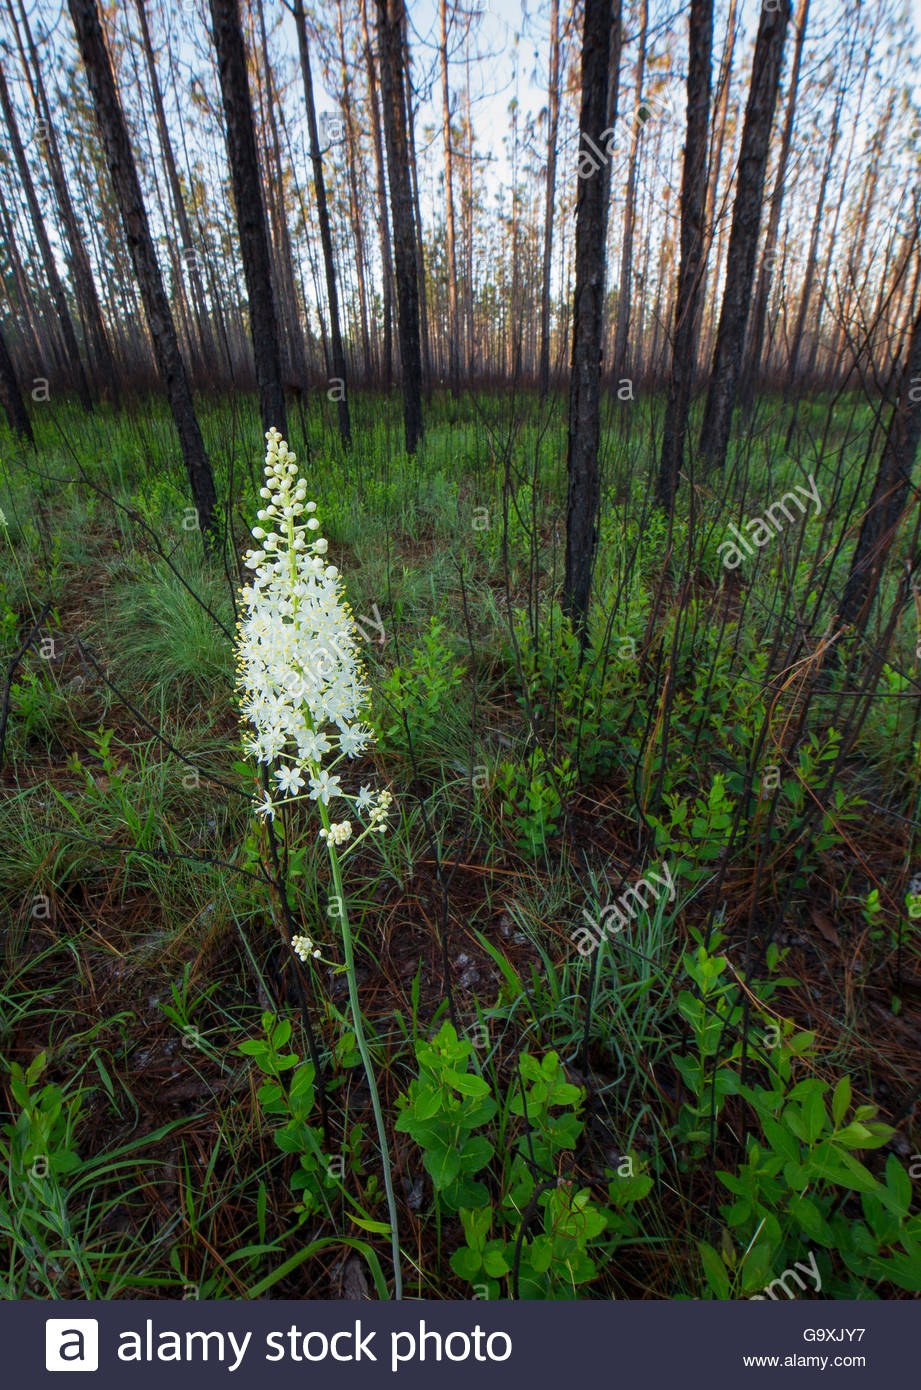 Osceola's Plume (Stenanthium densum) blooming after controlled fire, Conecuh National Forest, Alabama, USA. - Stock Image